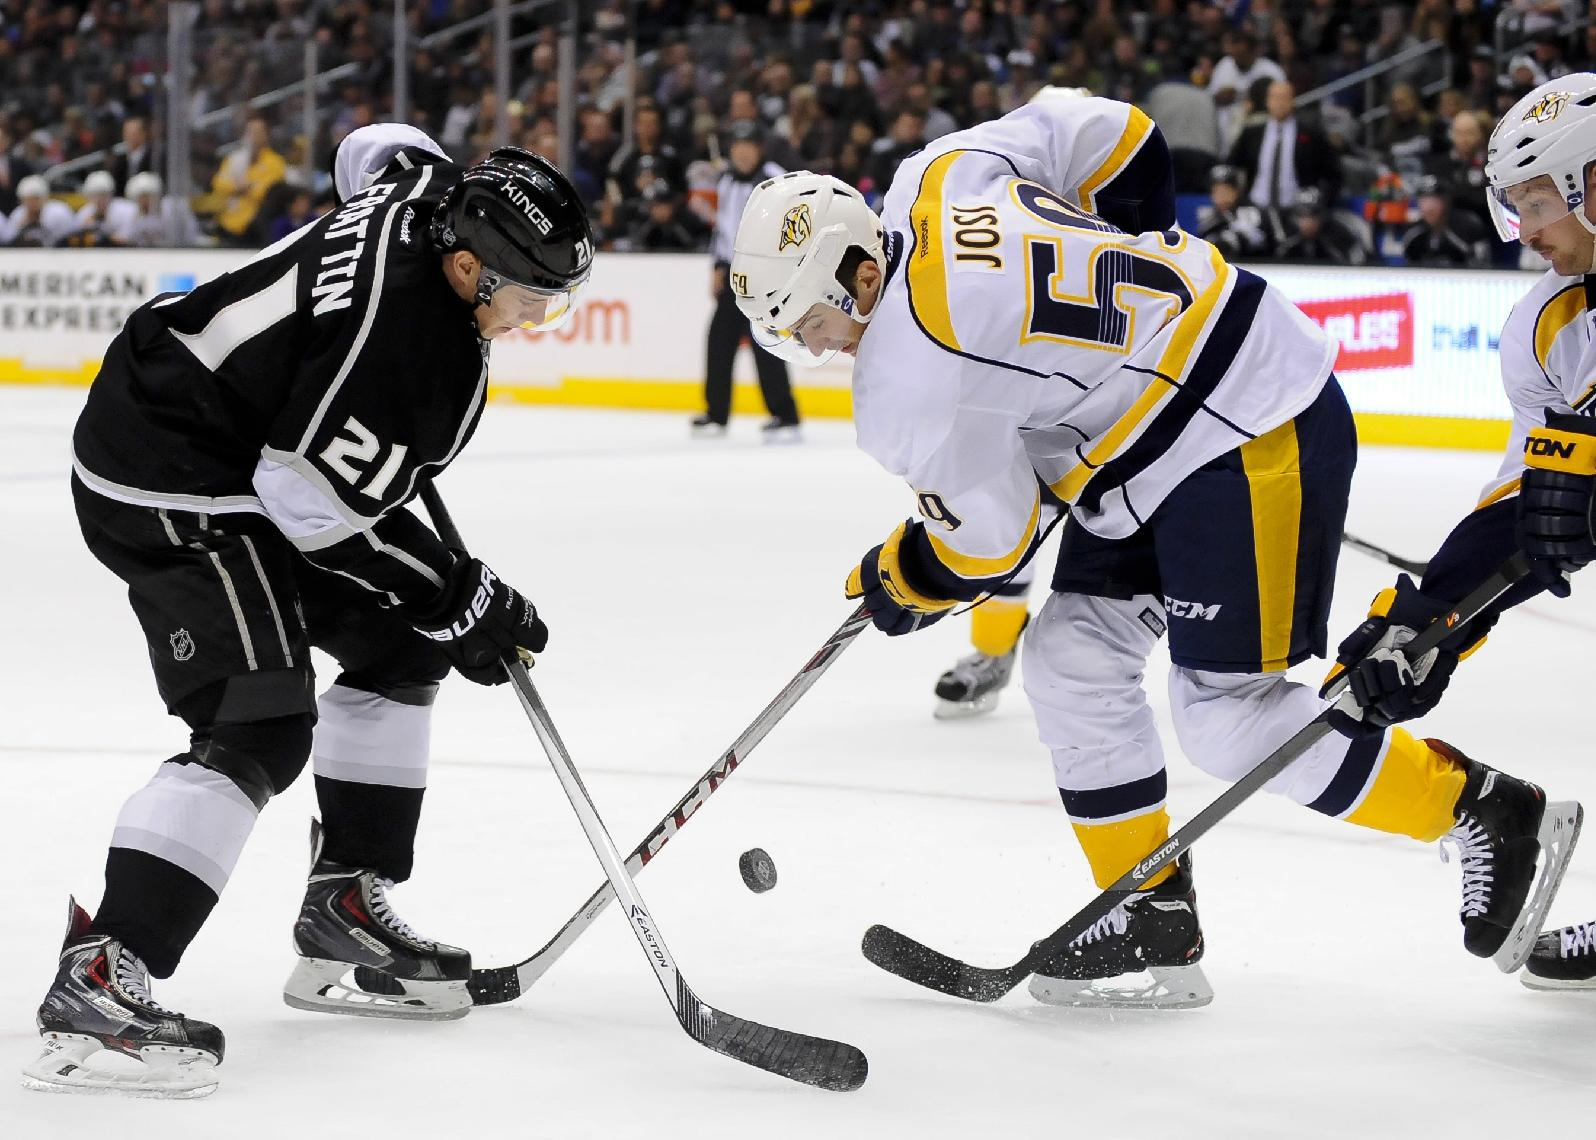 Nashville Predators defenseman Roman Josi (59), of Switzerland, attempts to get the puck by Los Angeles Kings right wing Matt Frattin (21) during the second period of their NHL hockey game on Saturday, Nov. 2, 2013, in Los Angeles. The Predators won 4-3